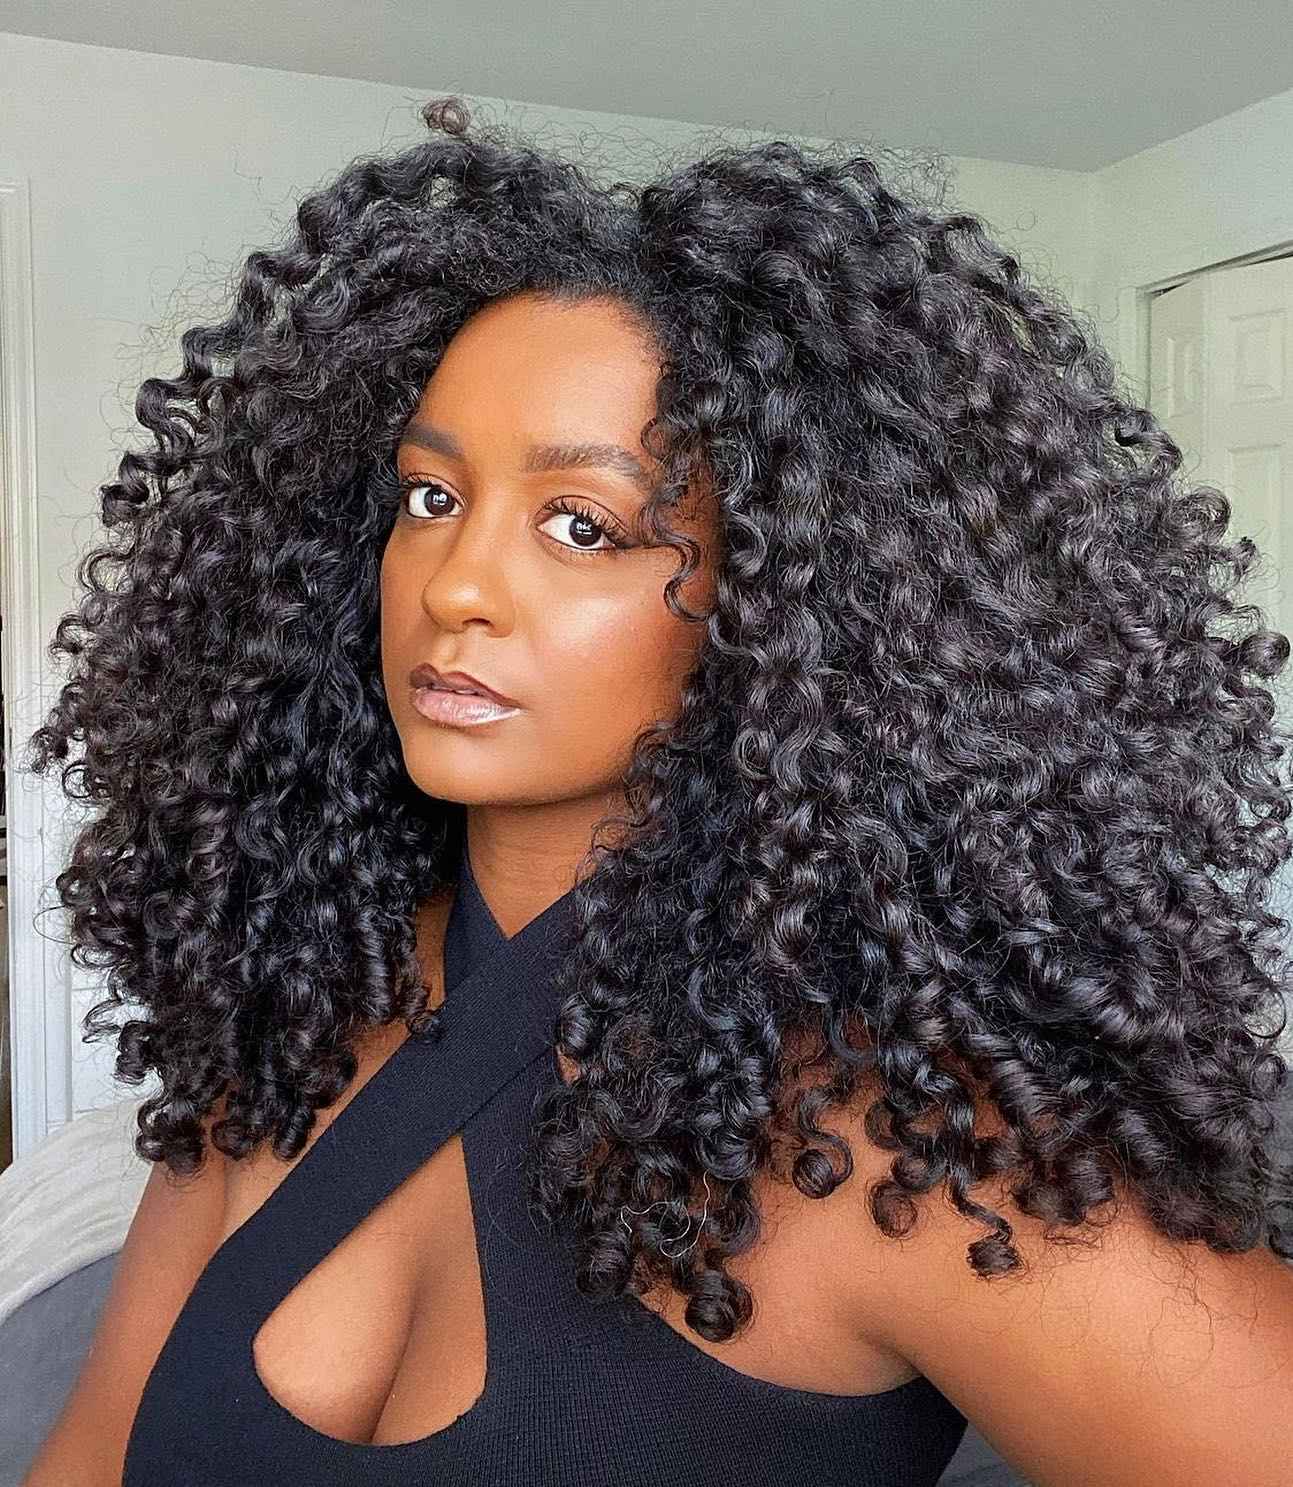 Healthy hair is the ultimate goal